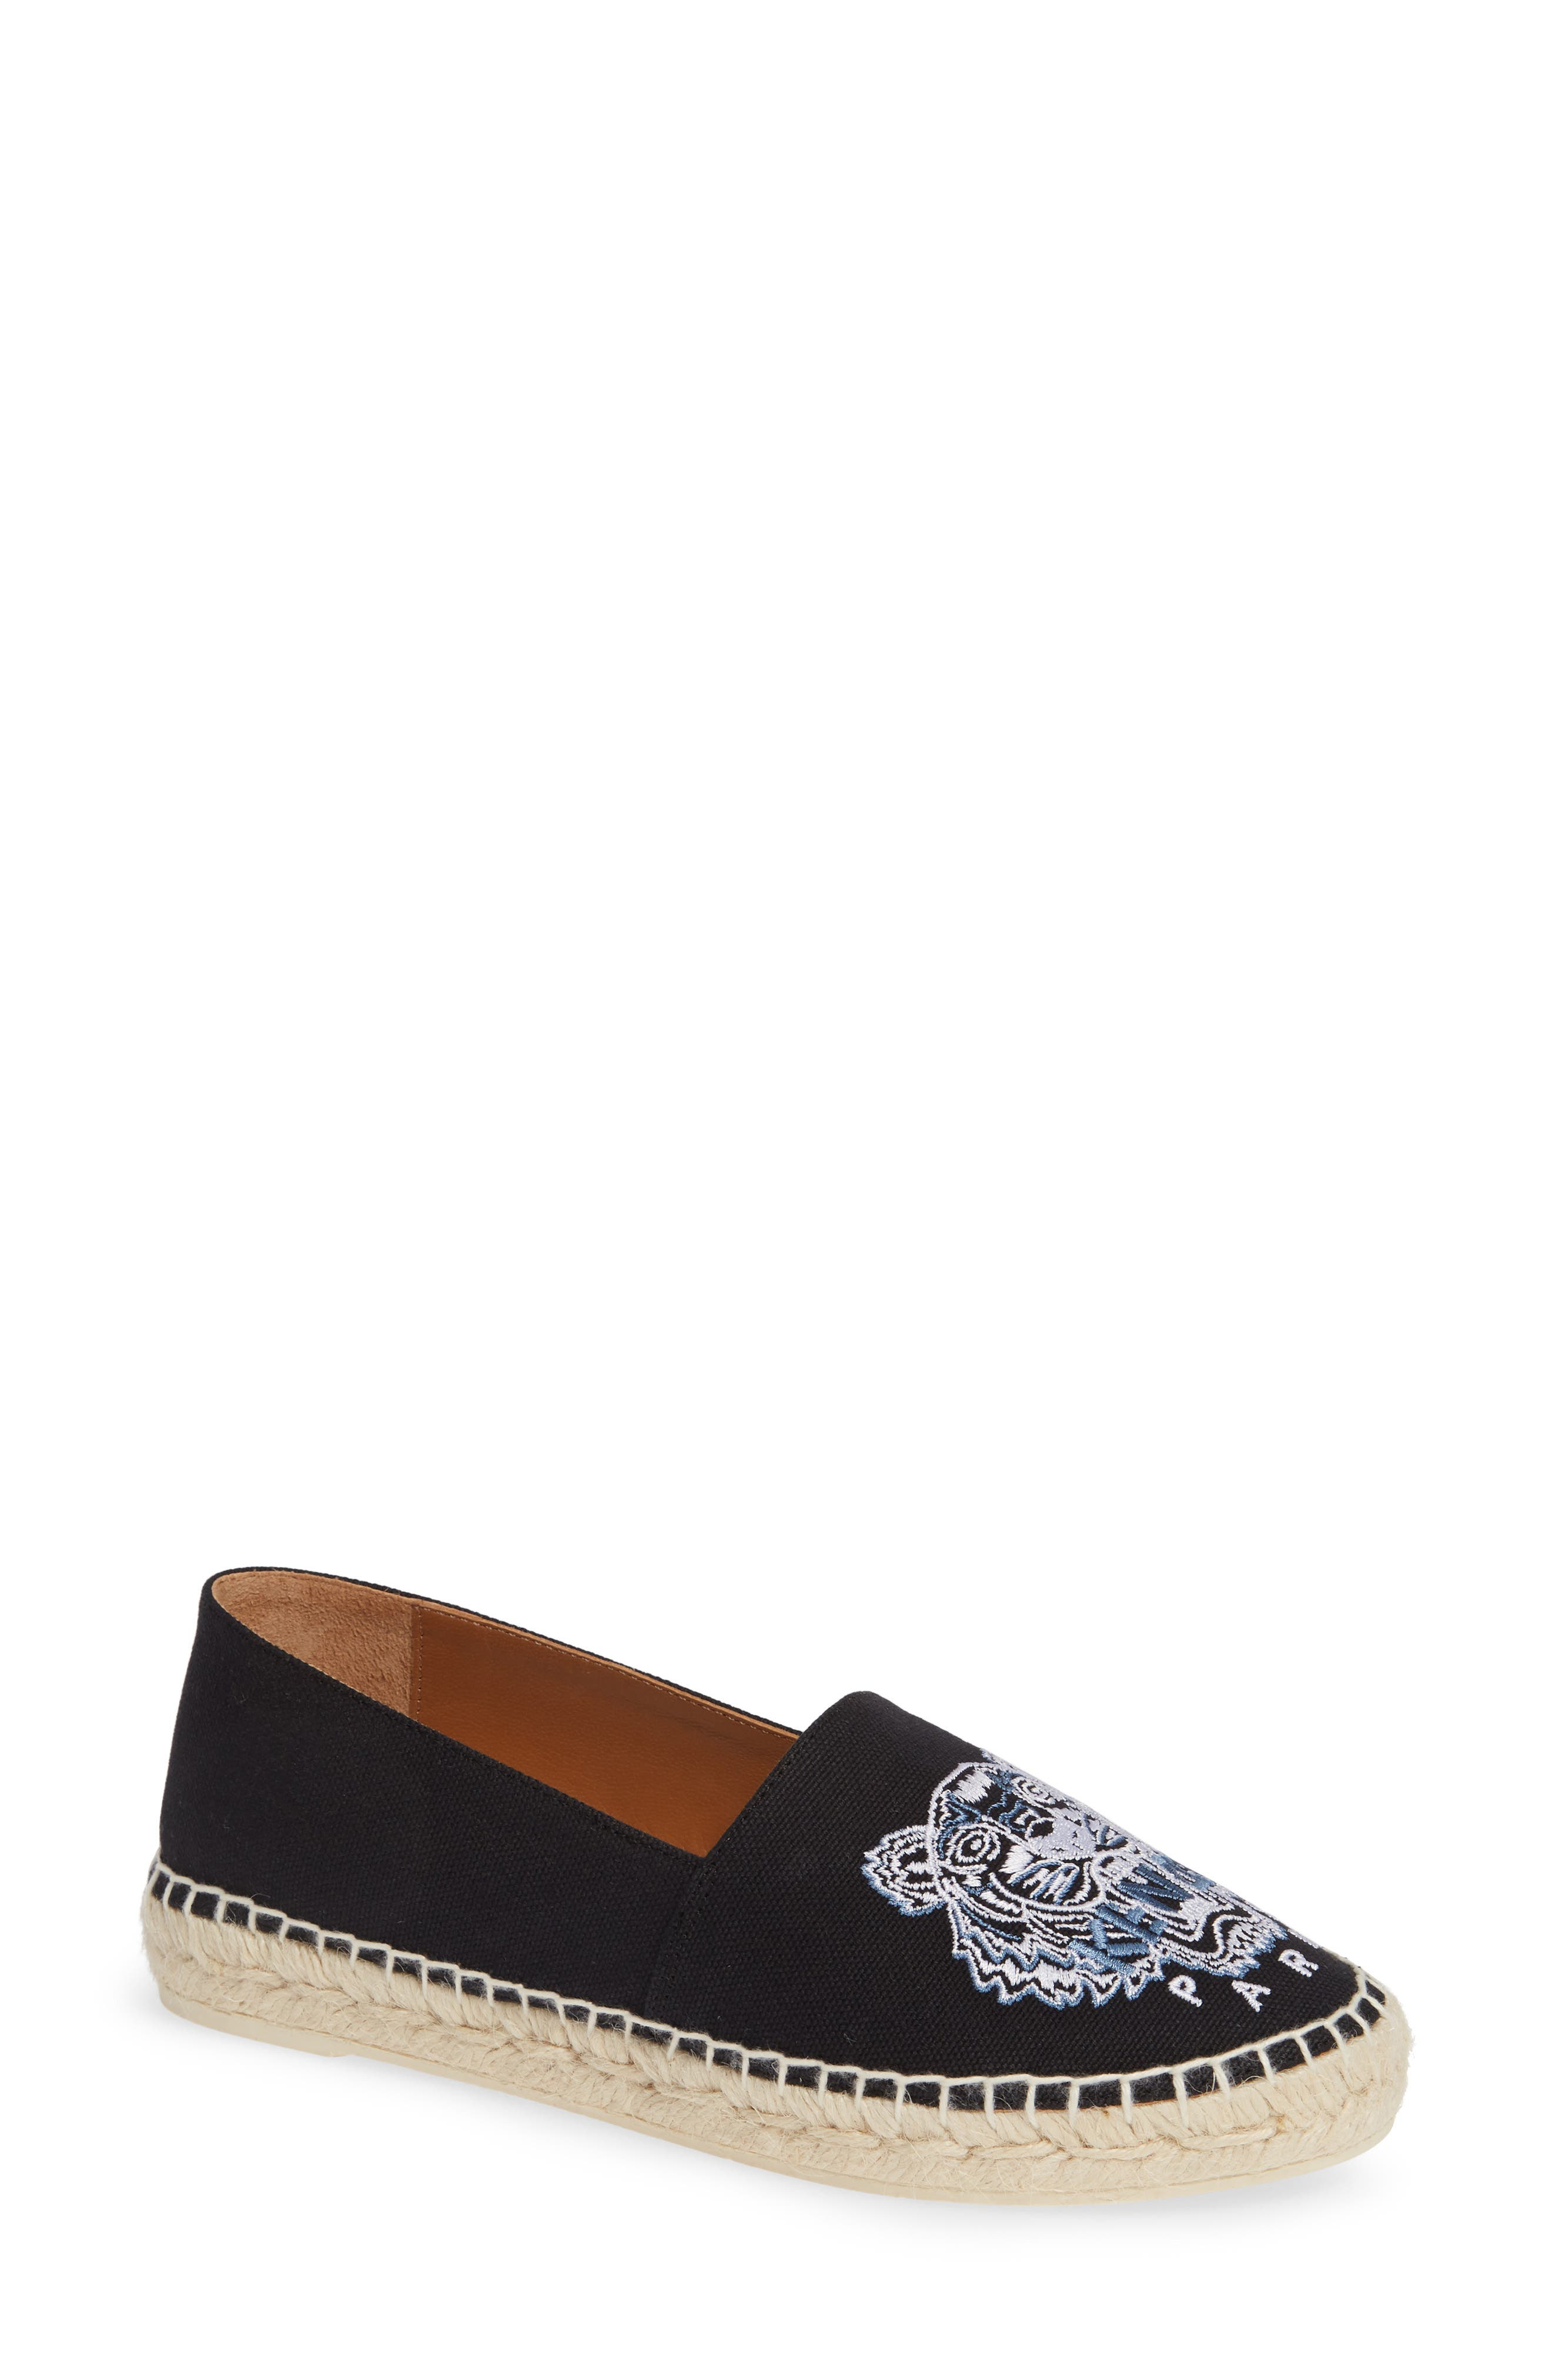 KENZO,                             White Tiger Embroidered Espadrille,                             Main thumbnail 1, color,                             BLACK